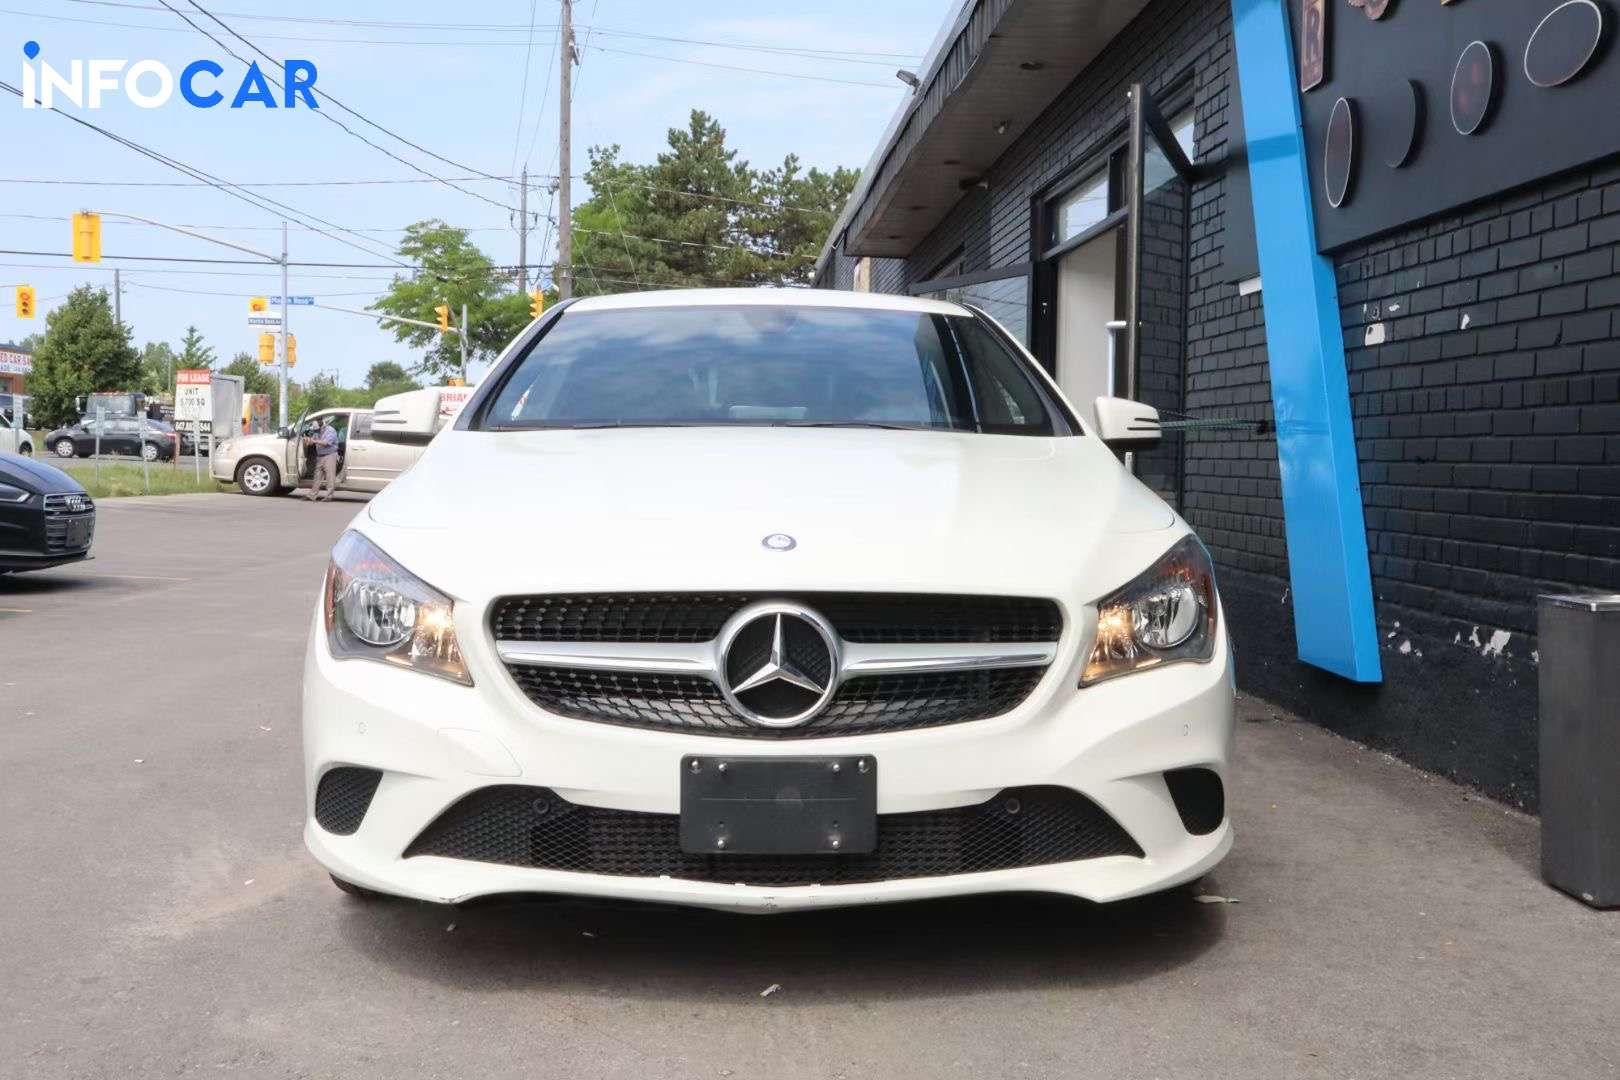 2015 Mercedes-Benz CLA-Class 250 - INFOCAR - Toronto's Most Comprehensive New and Used Auto Trading Platform